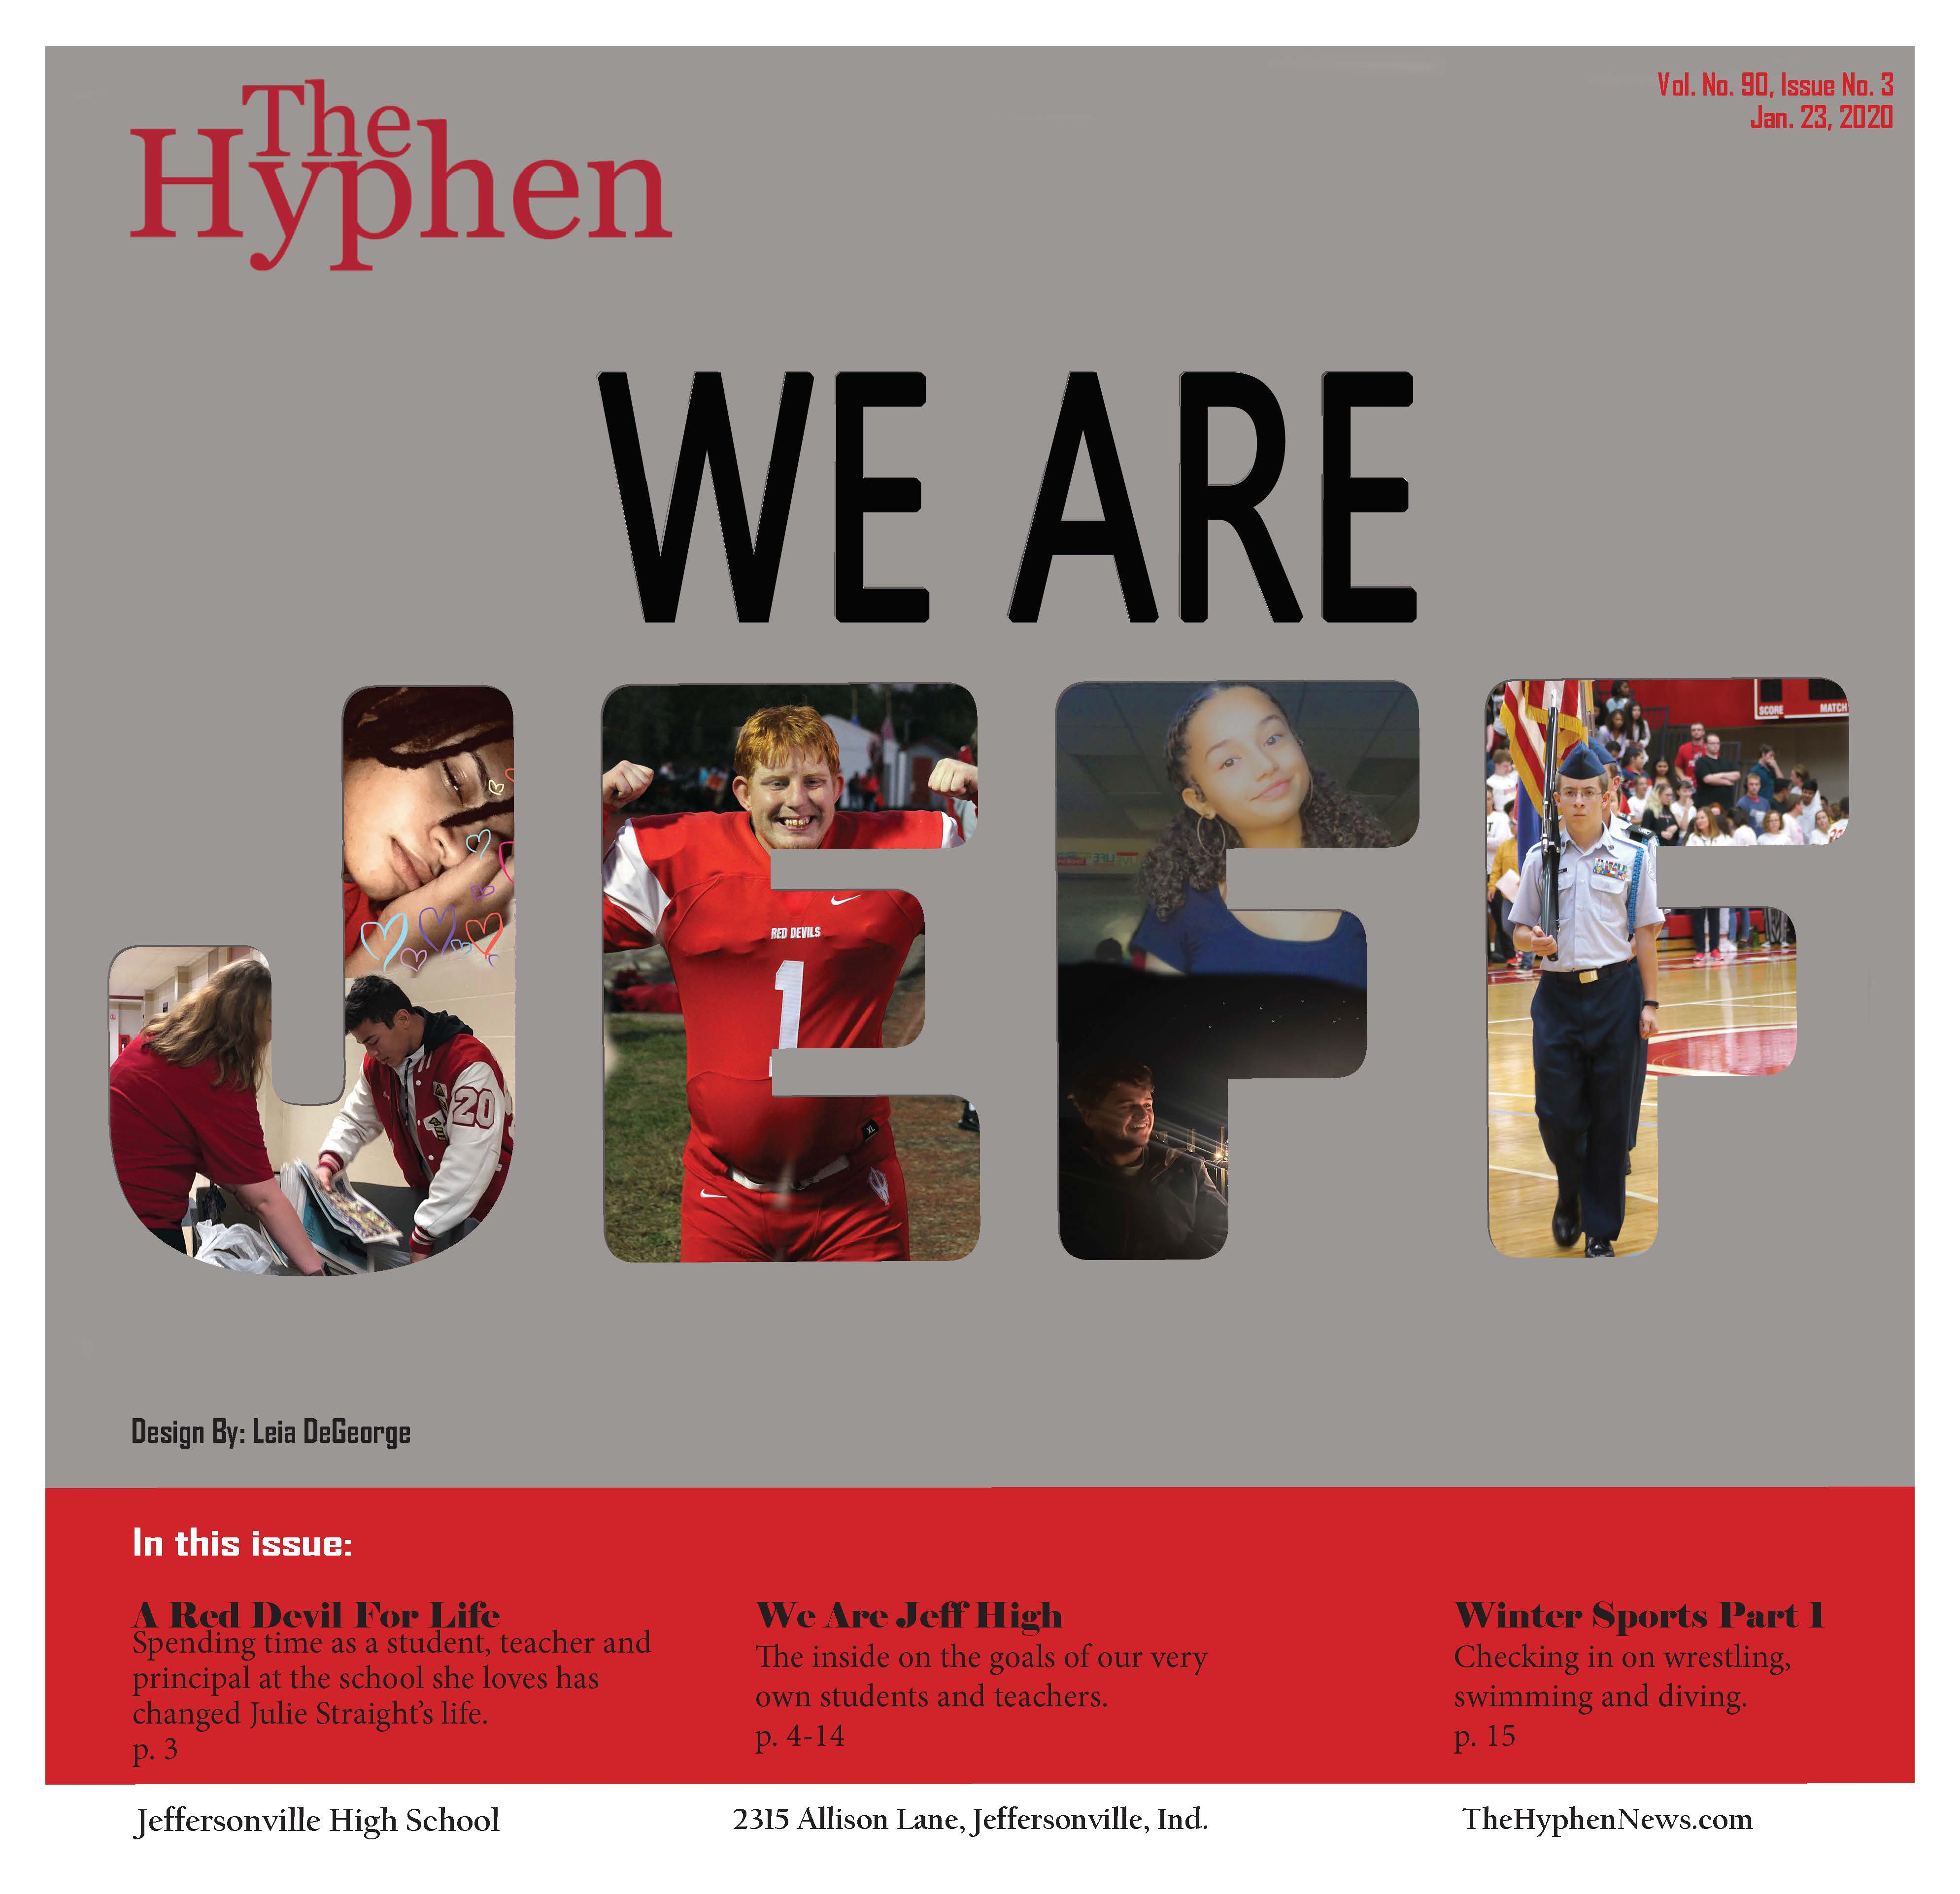 hyphen-jan23-2020-cover-image